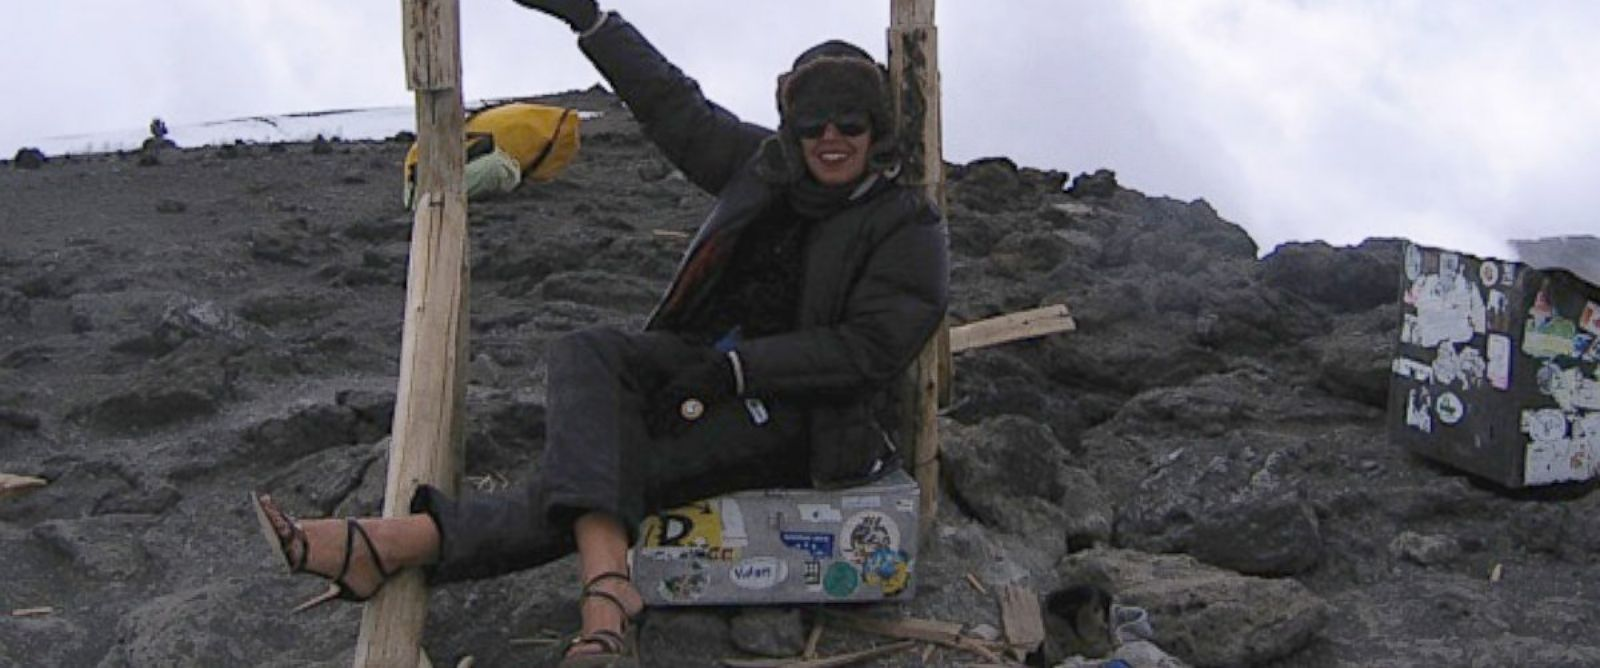 PHOTO: Rima Suqi posed atop Mount Kilimanjaro in a pair of stilettos